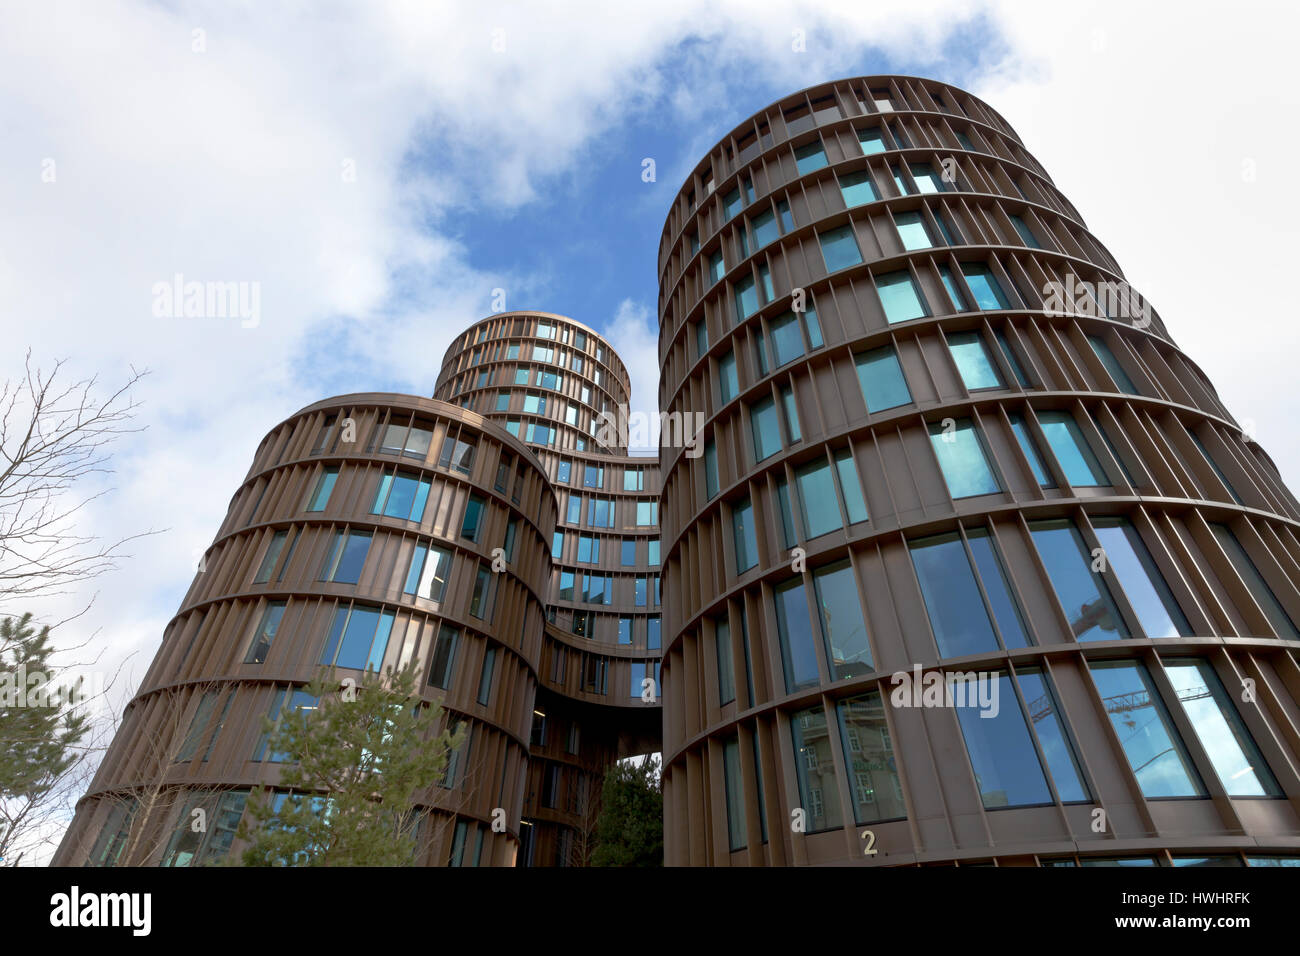 Axel Towers, five round towers in Axel Square, Axel Torv, Vesterbrogade, Copenhagen. - Stock Image